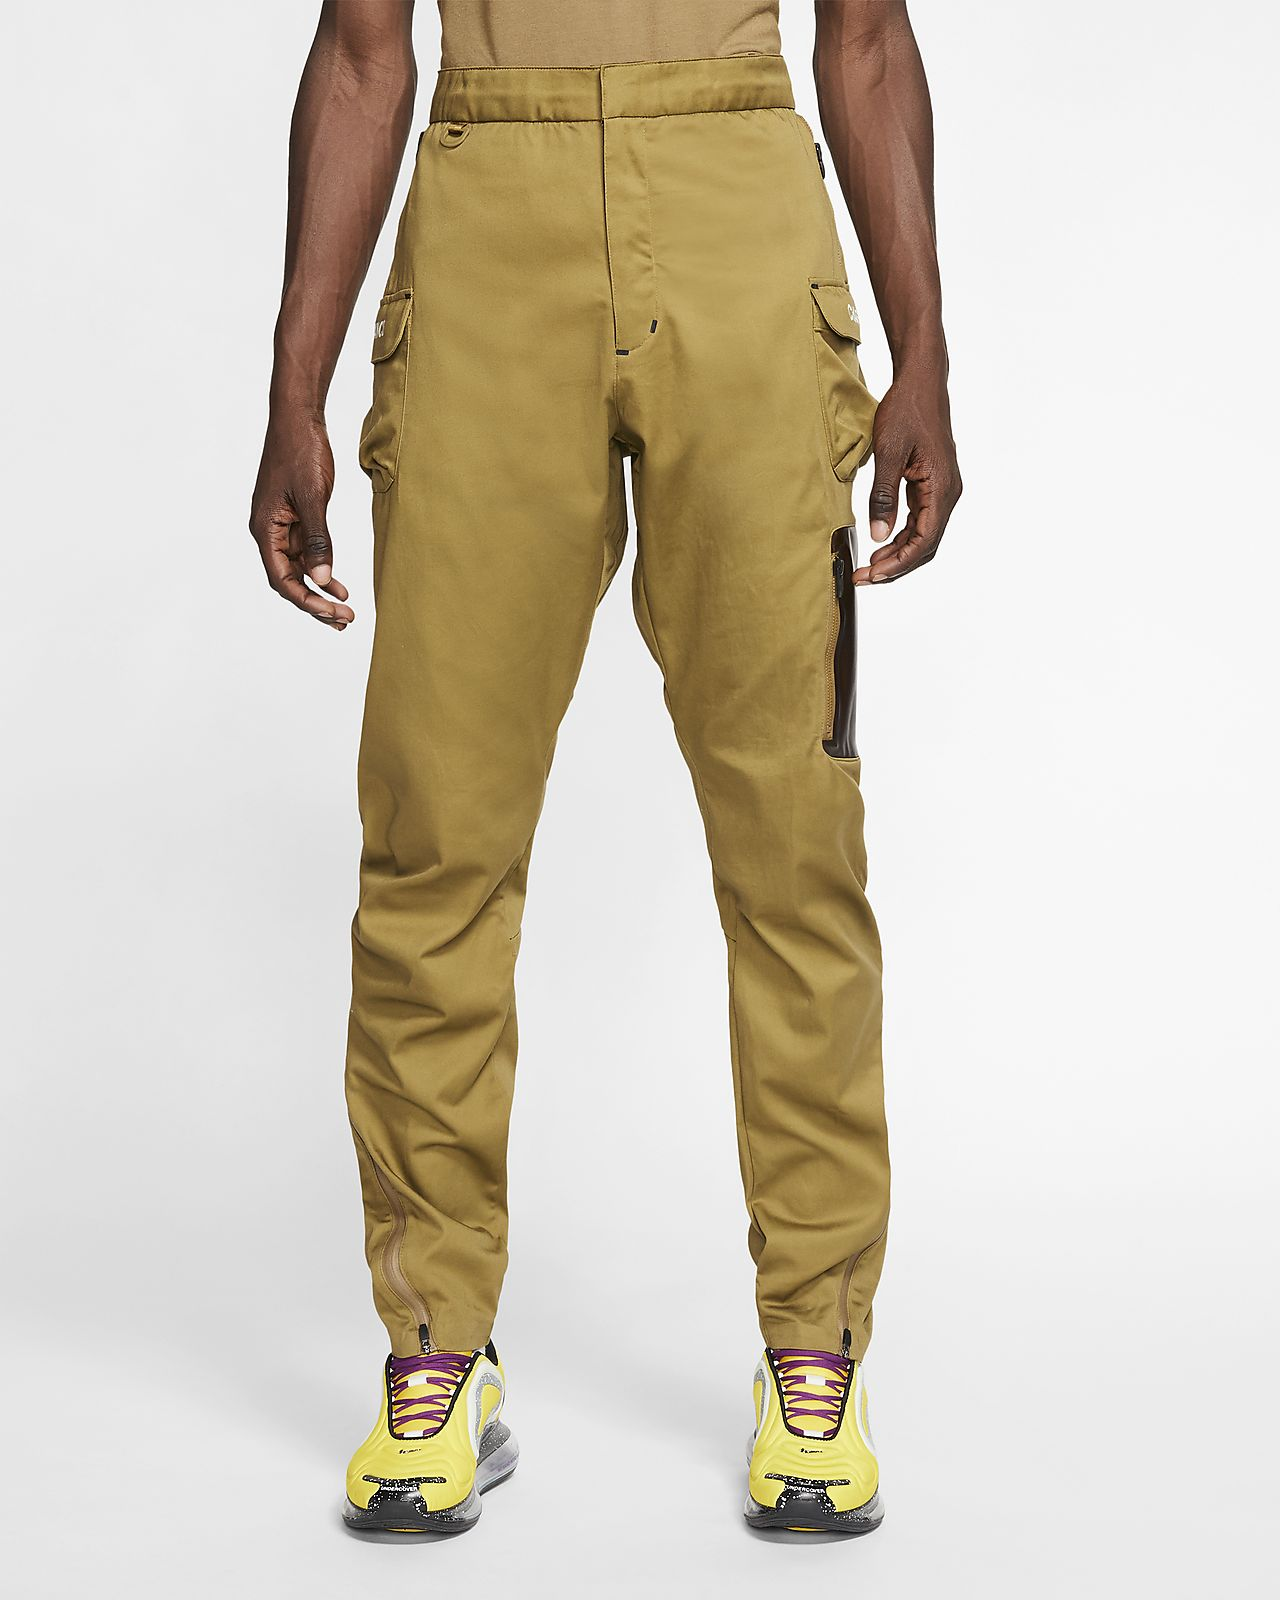 Nike x Undercover Cargo Trousers